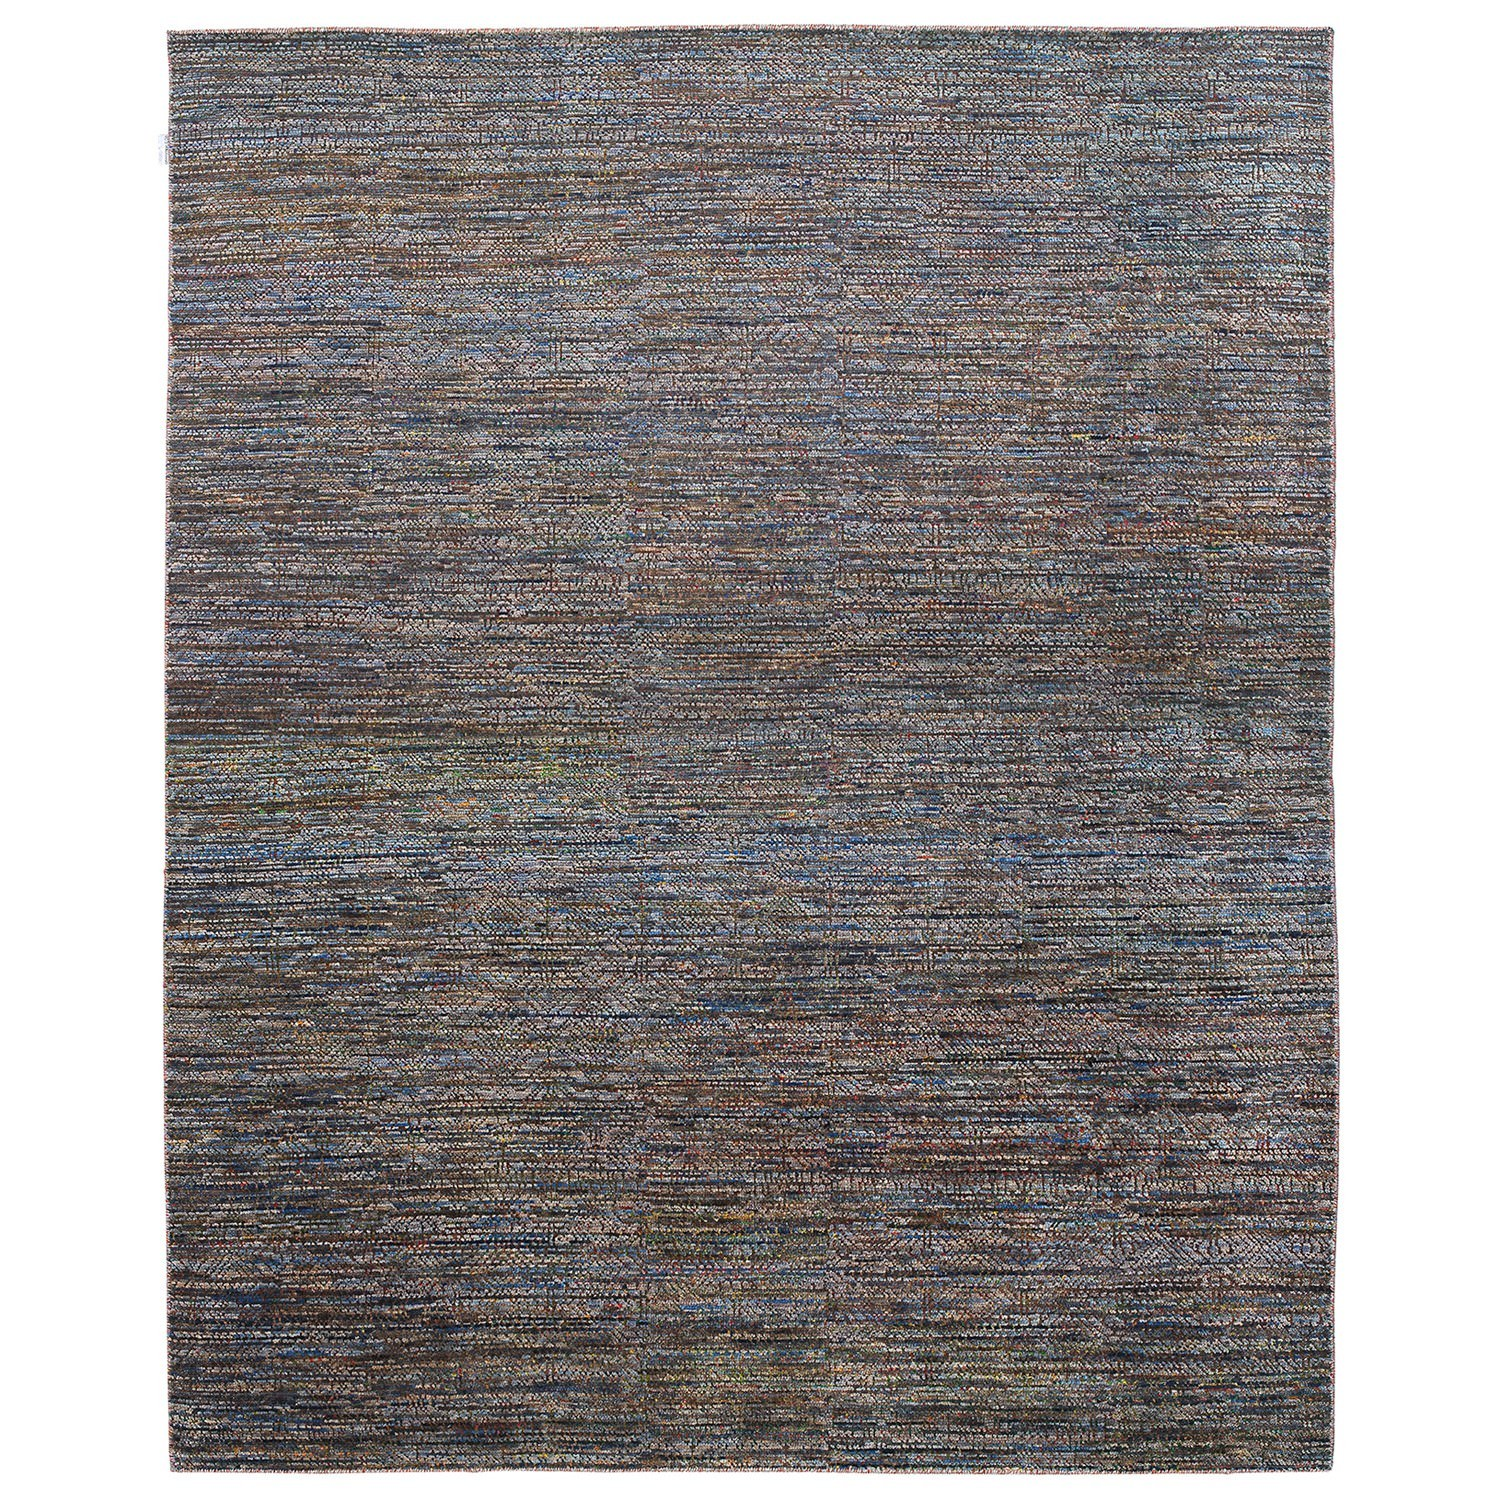 Perry Hand Knotted Wool Rug, 370x275cm, Grey / Blue